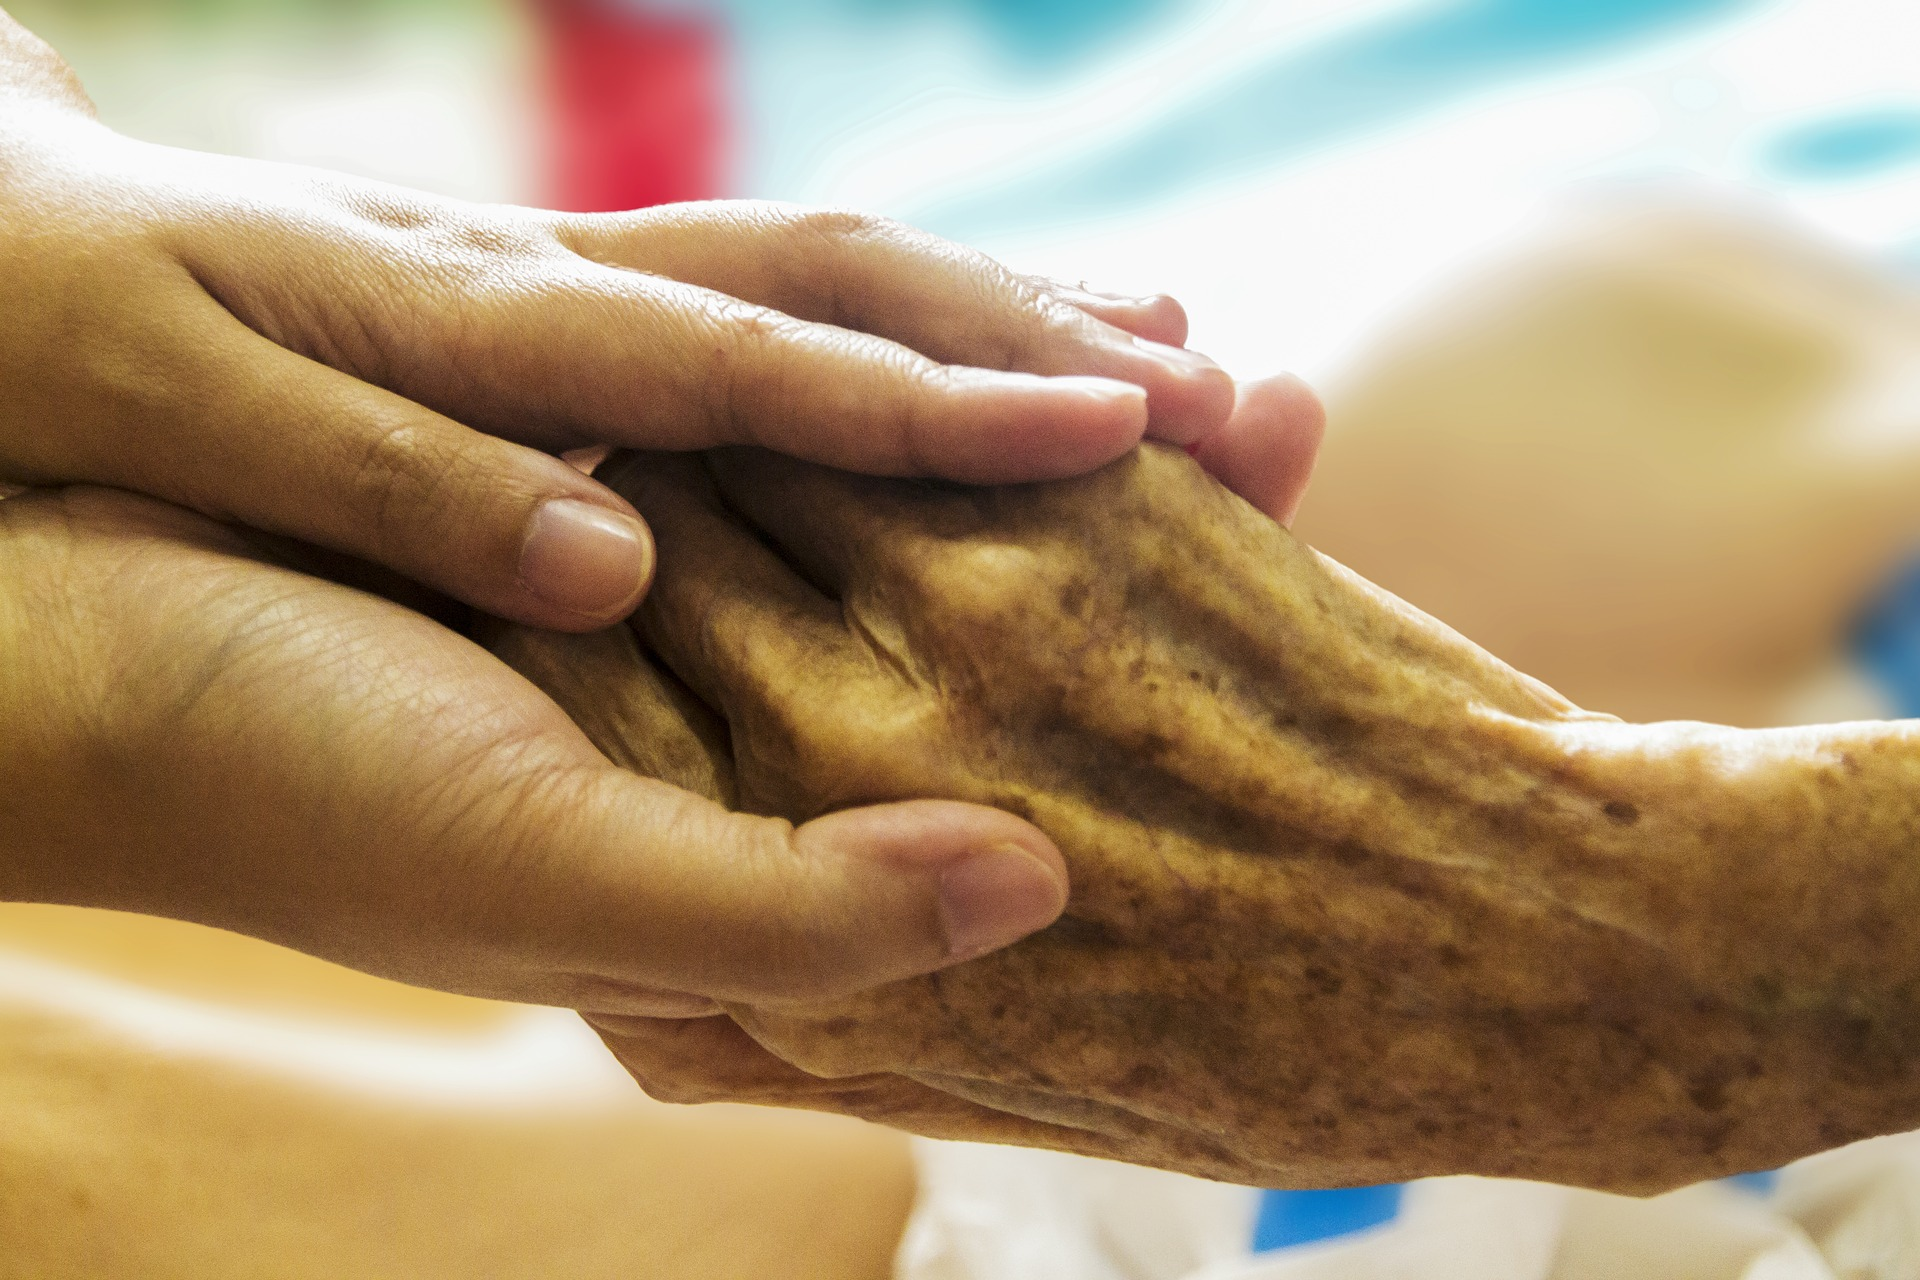 Two smaller hands grasp an older person's hand against the blurred background of a hospital room.